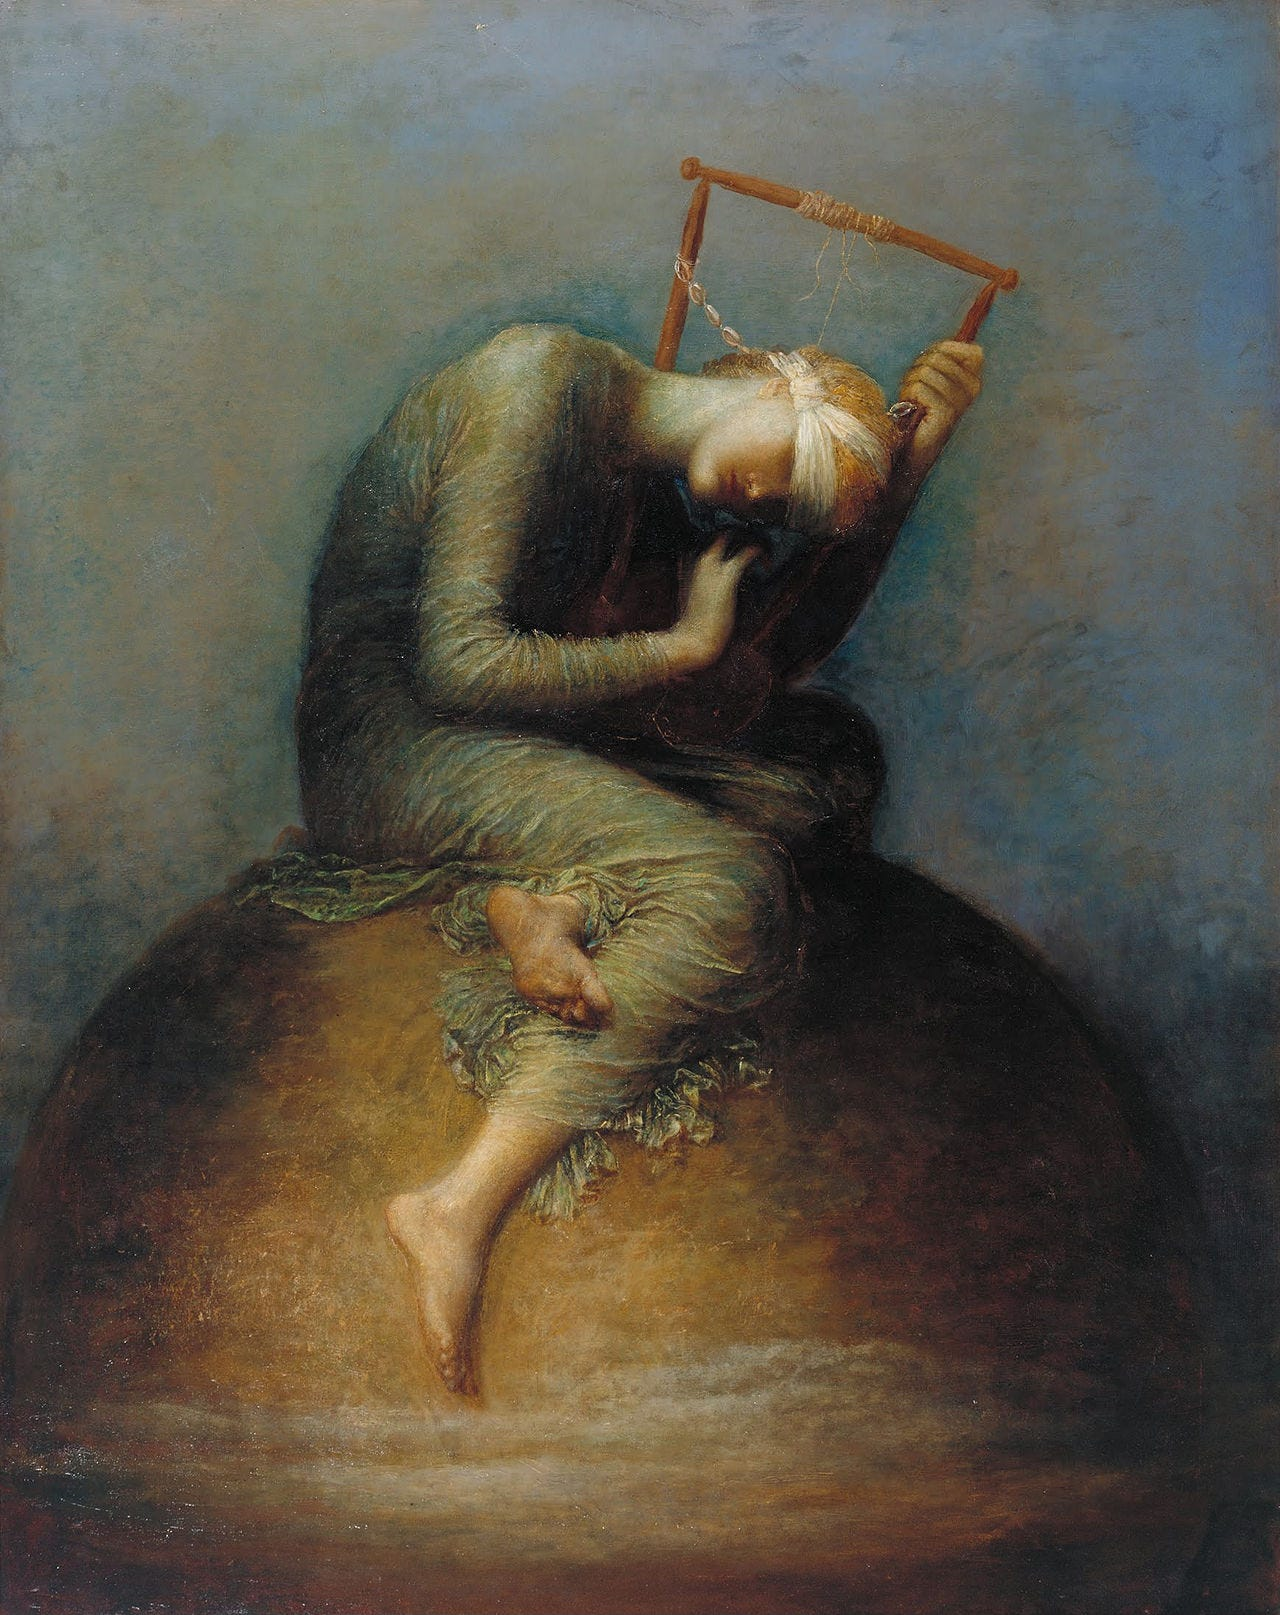 Blindfolded Hope sitting on a globe